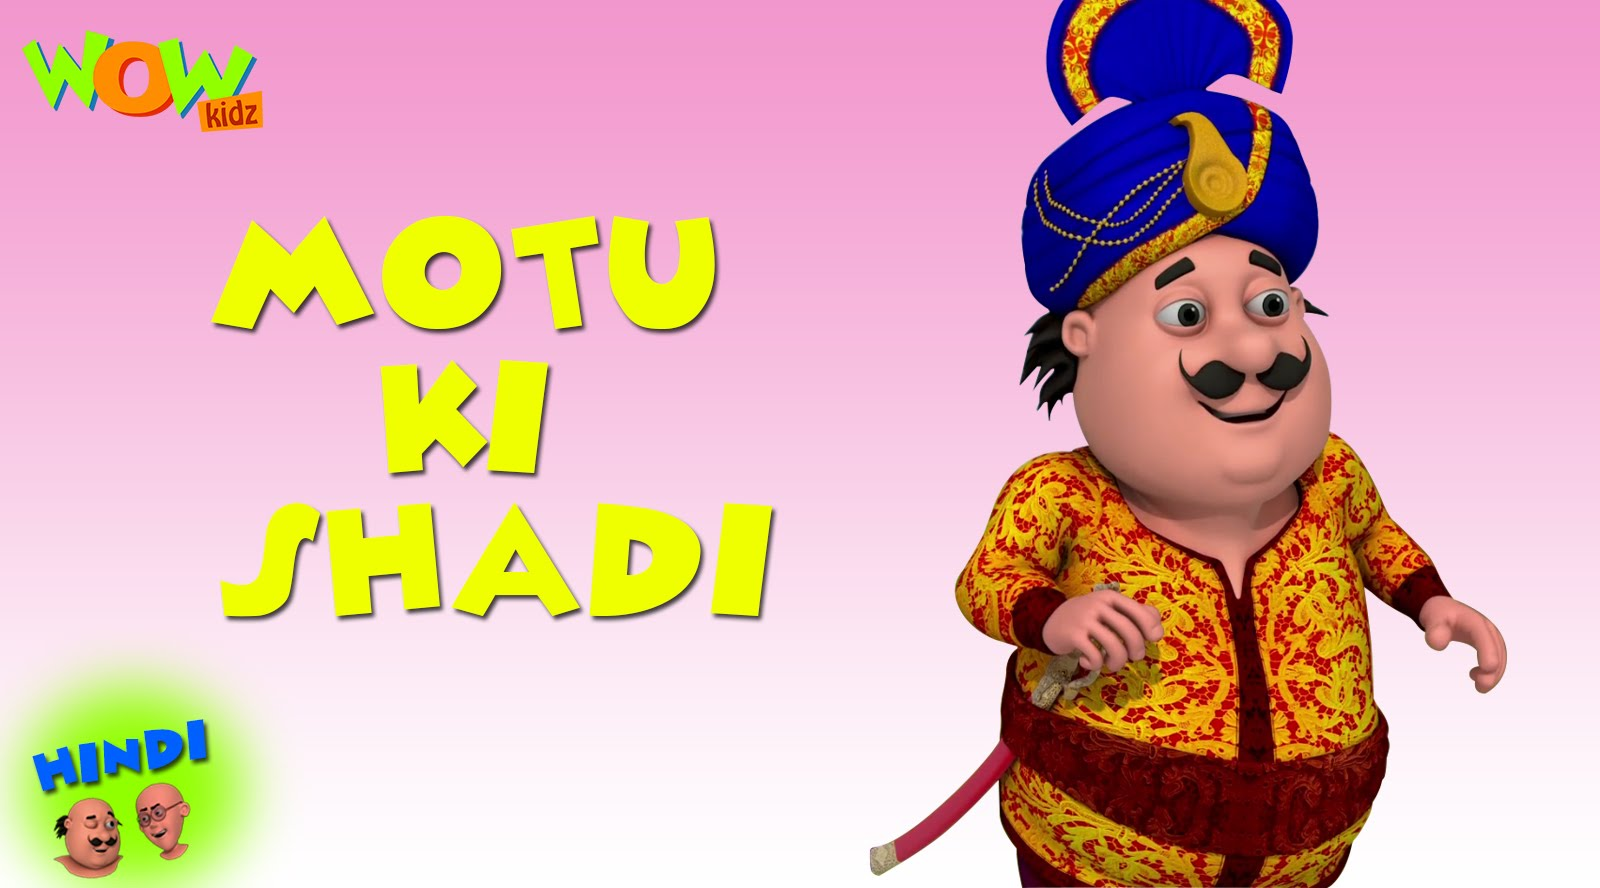 All Cartoons Movies In Hindi Free Download